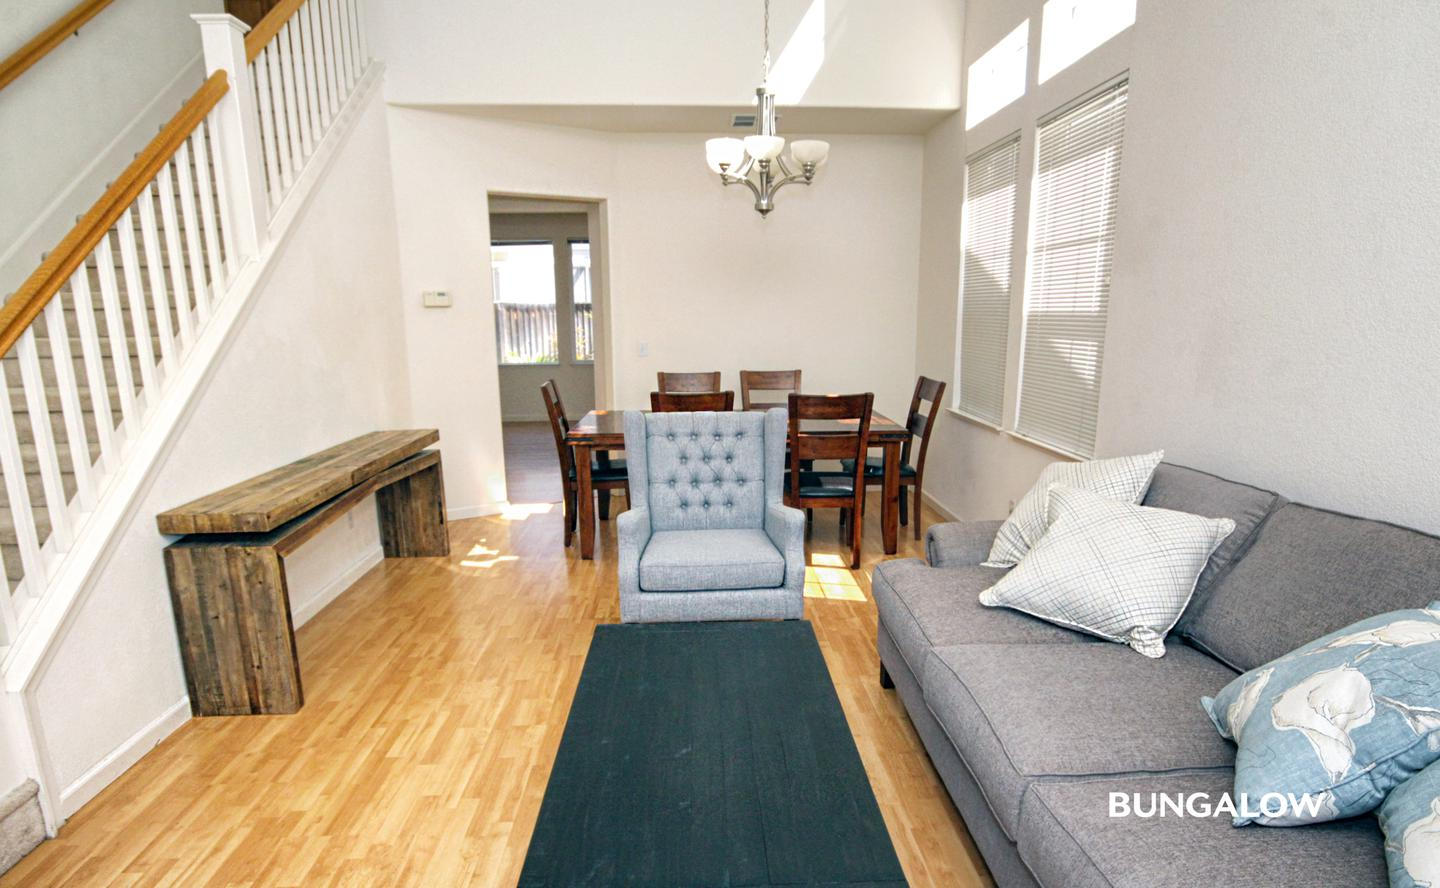 Private Bedroom in Welcoming Palo Alto Home Near University Square Park